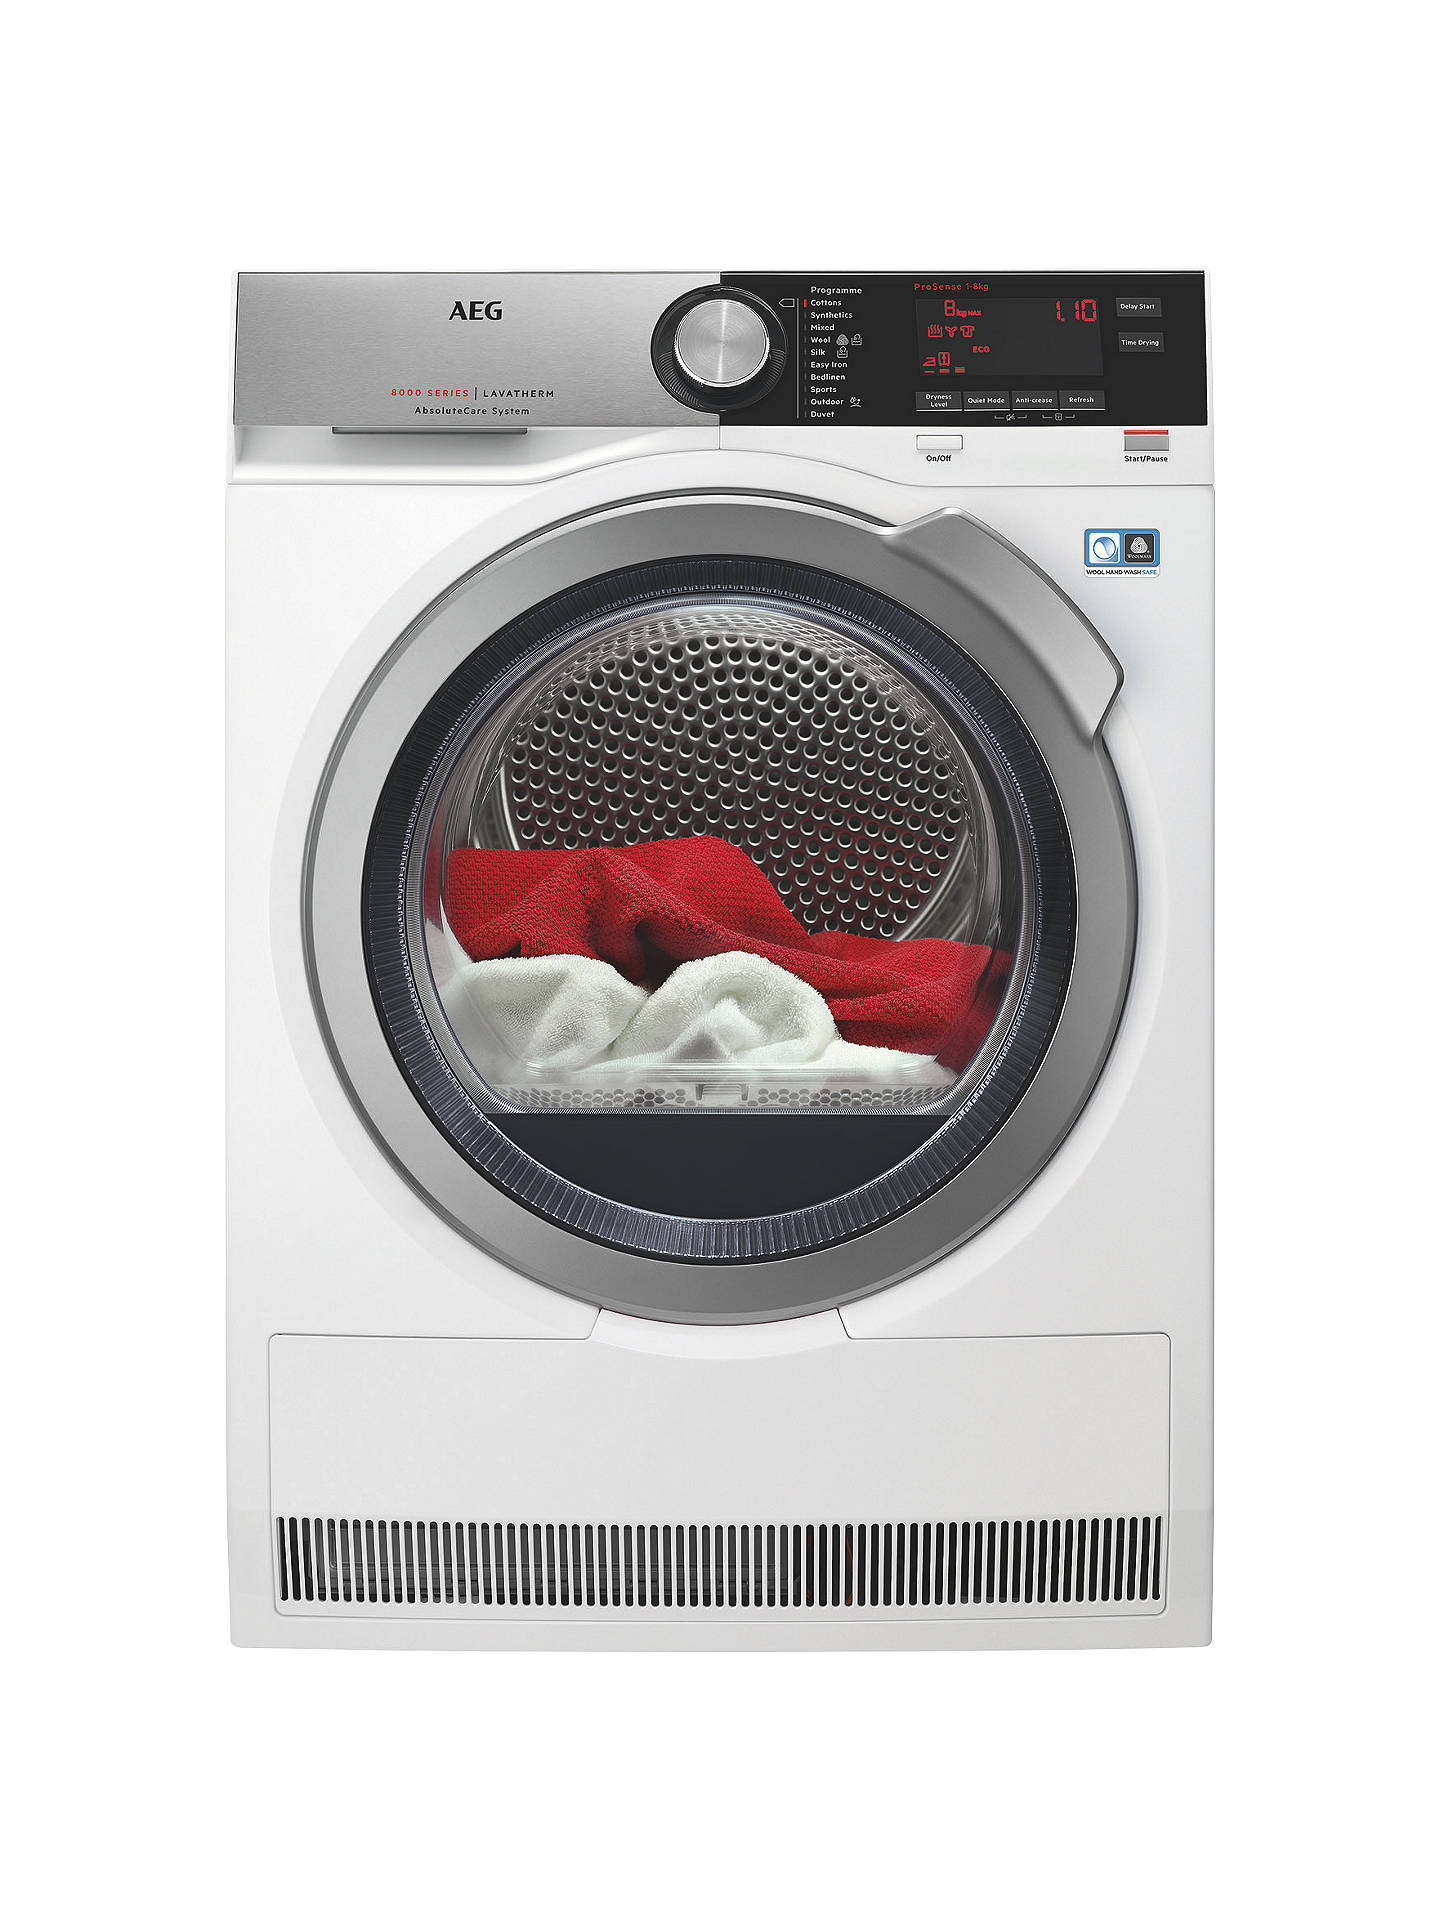 BuyAEG T8DEC846R  8000 Series Heat Pump Tumble Dryer, 8kg Load, A++ Energy Rating, White Online at johnlewis.com